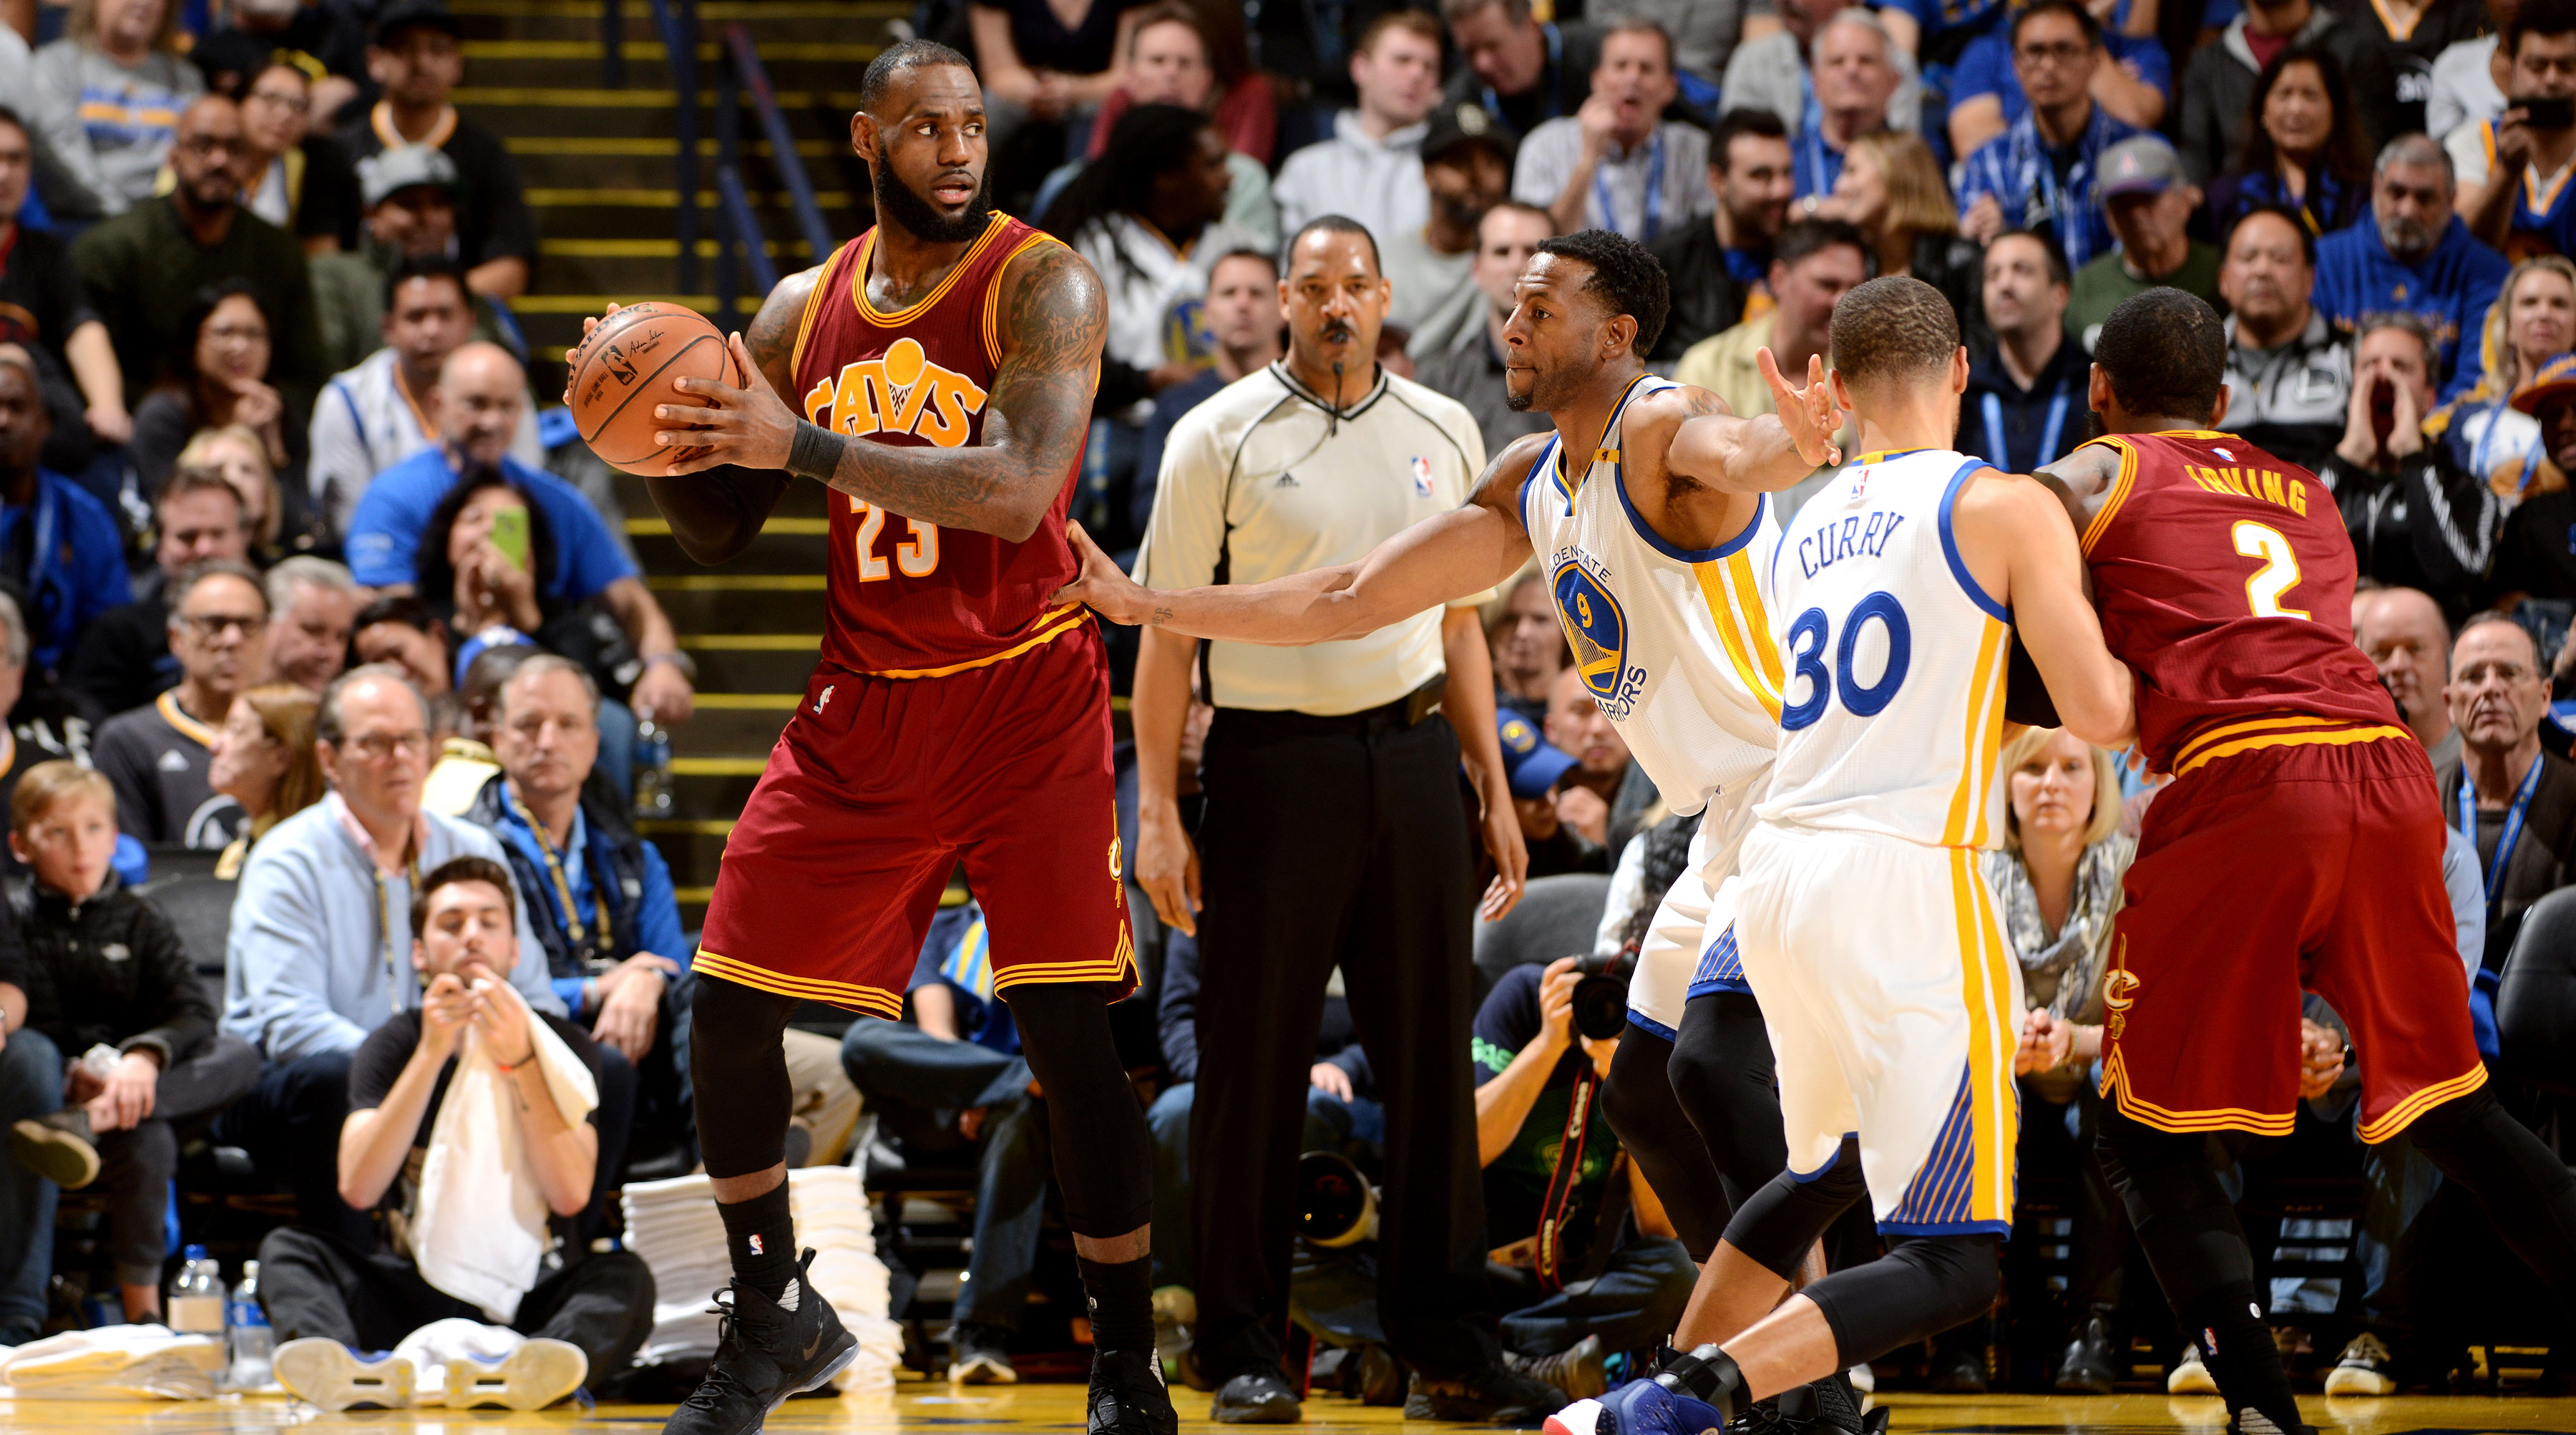 cavs vs warriors schedule: 2017 nba finals game dates | si